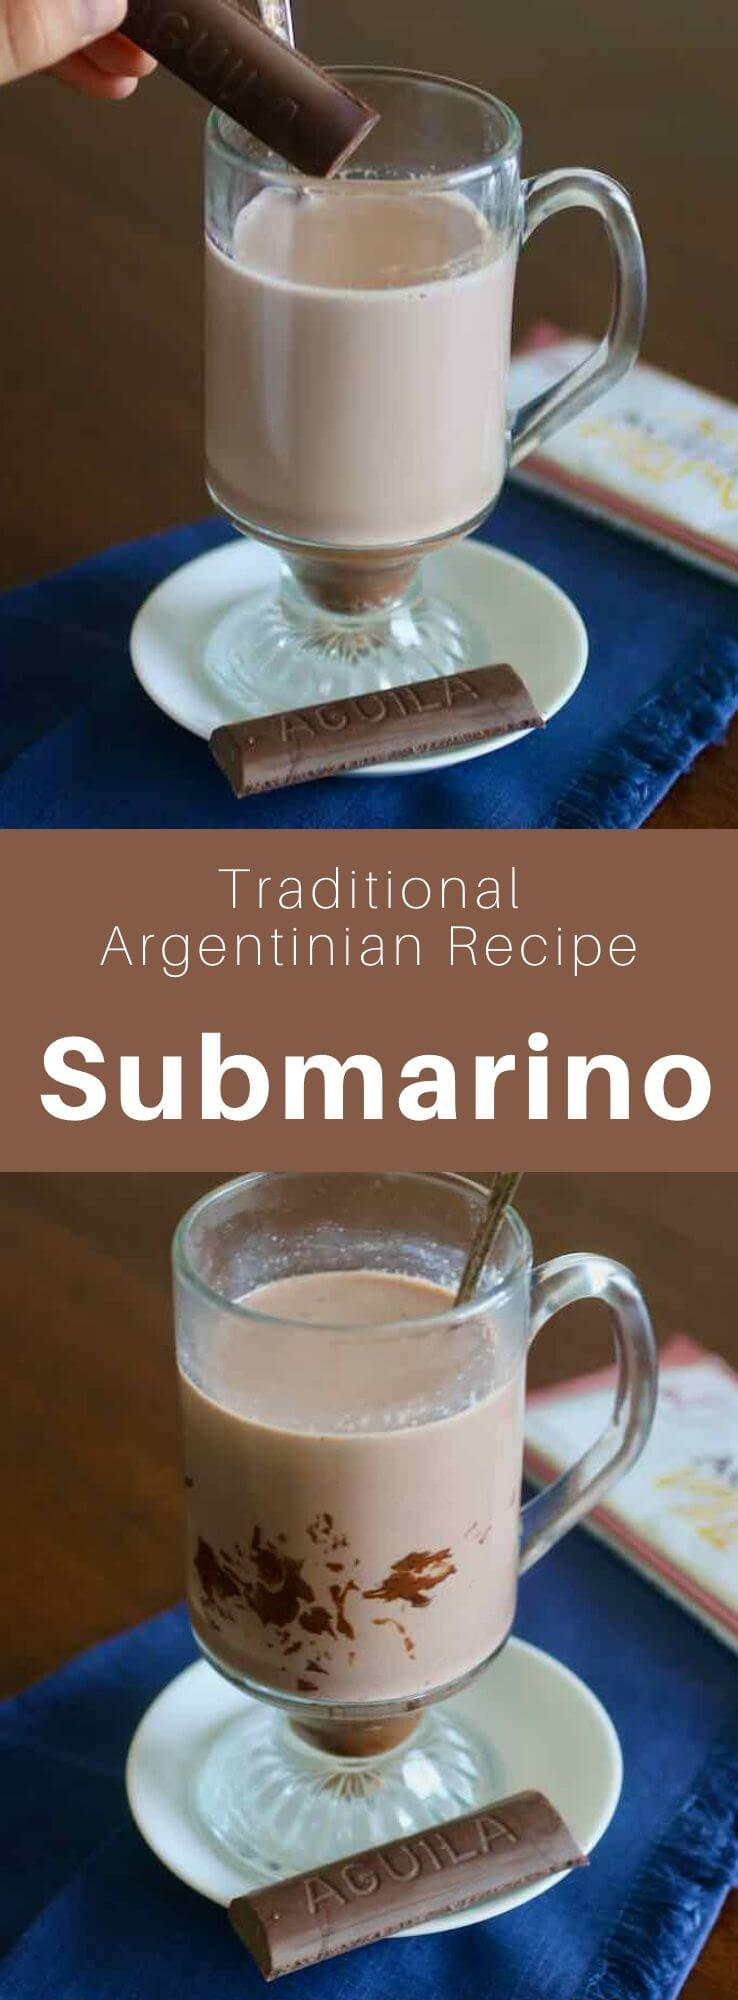 El submarino is a hot chocolate from Argentina and Uruguay, in which the chocolate bar is like the submarine in a glass of hot milk. #Argentina #ArgentinianRecipe #ArgentinianFood #ArgentinianCuisine #WorldCuisine #196flavors